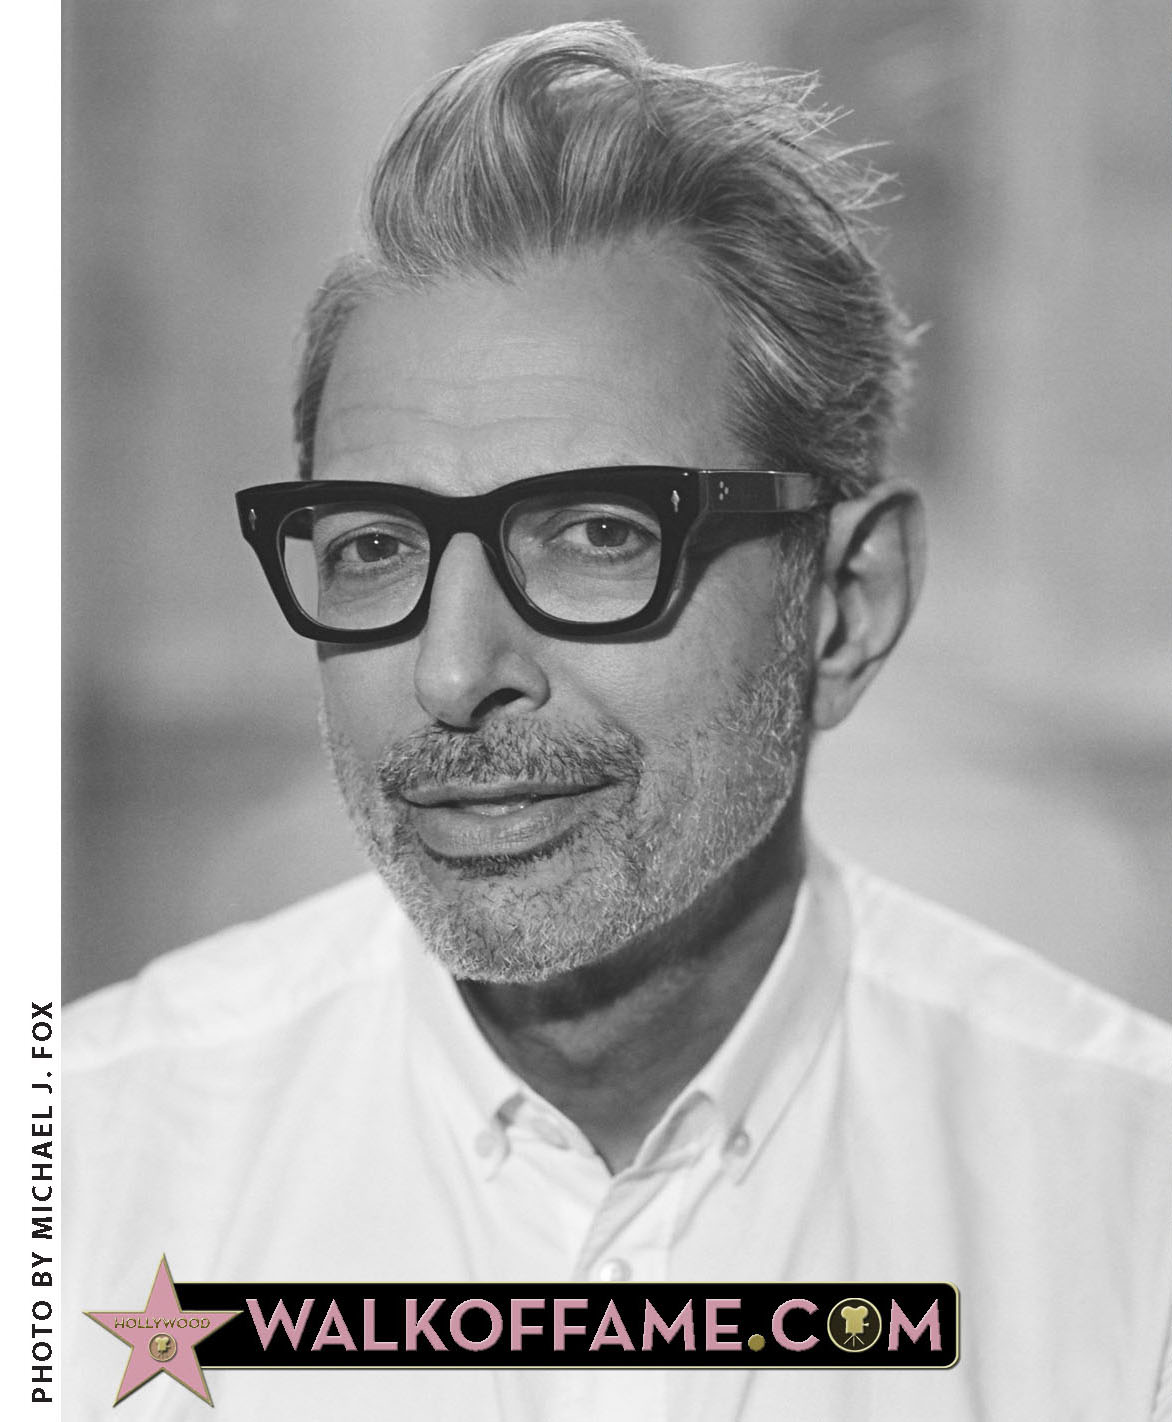 Hollywood Chamber to honor Jeff Goldblum with Walk of Fame Star